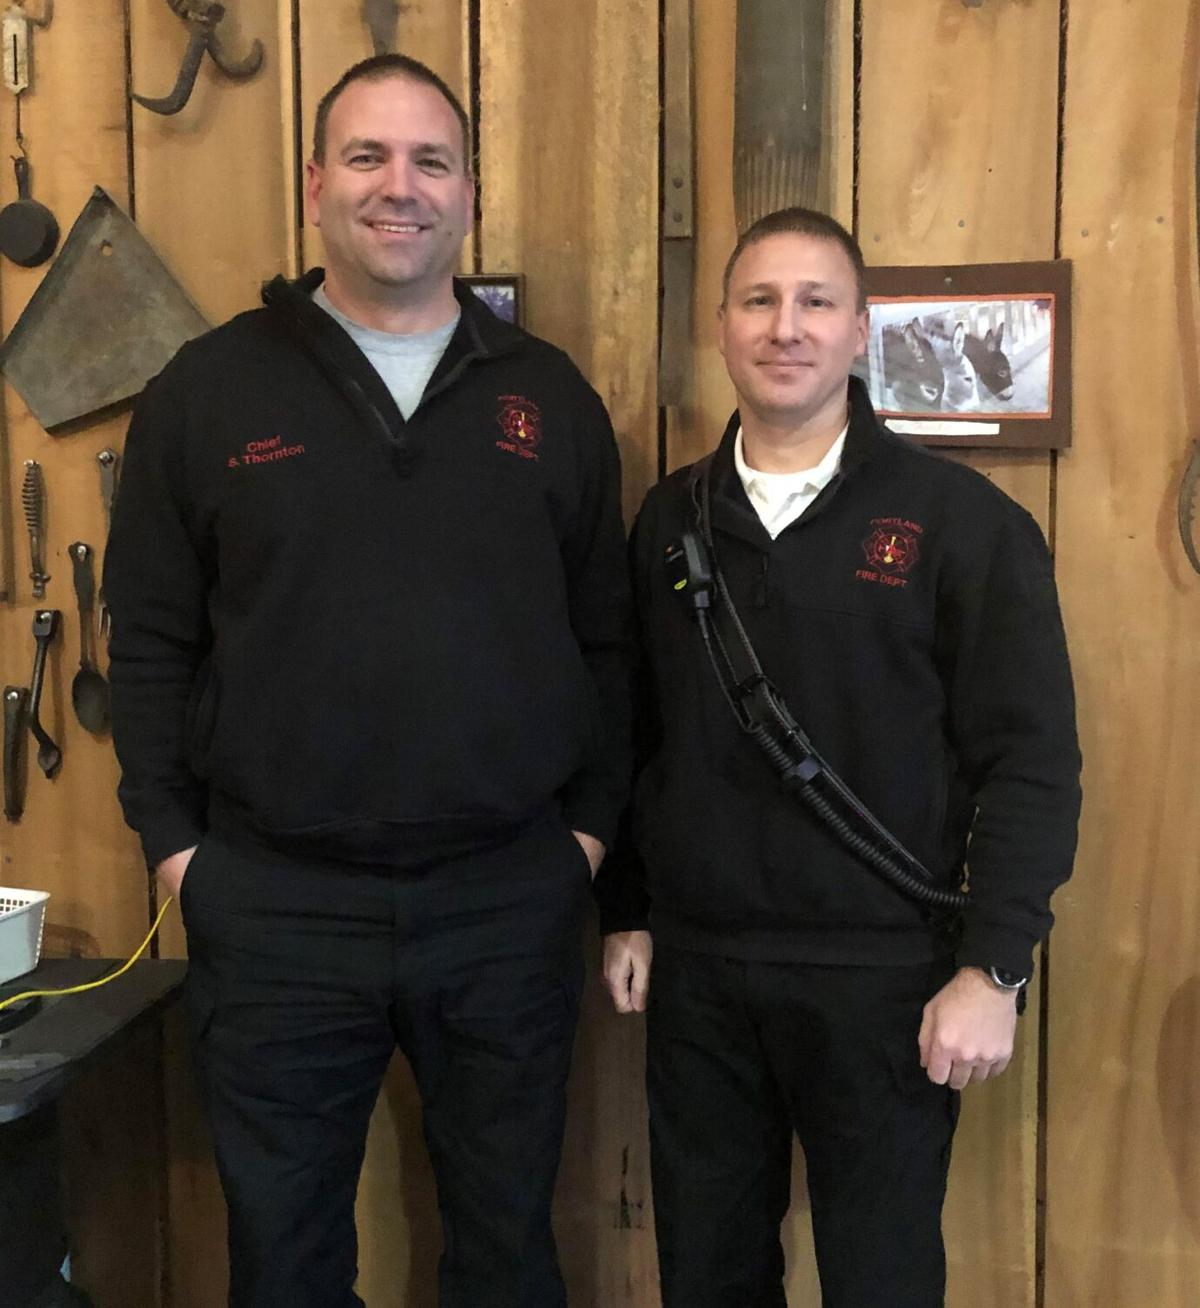 Tyson named assistant fire chief